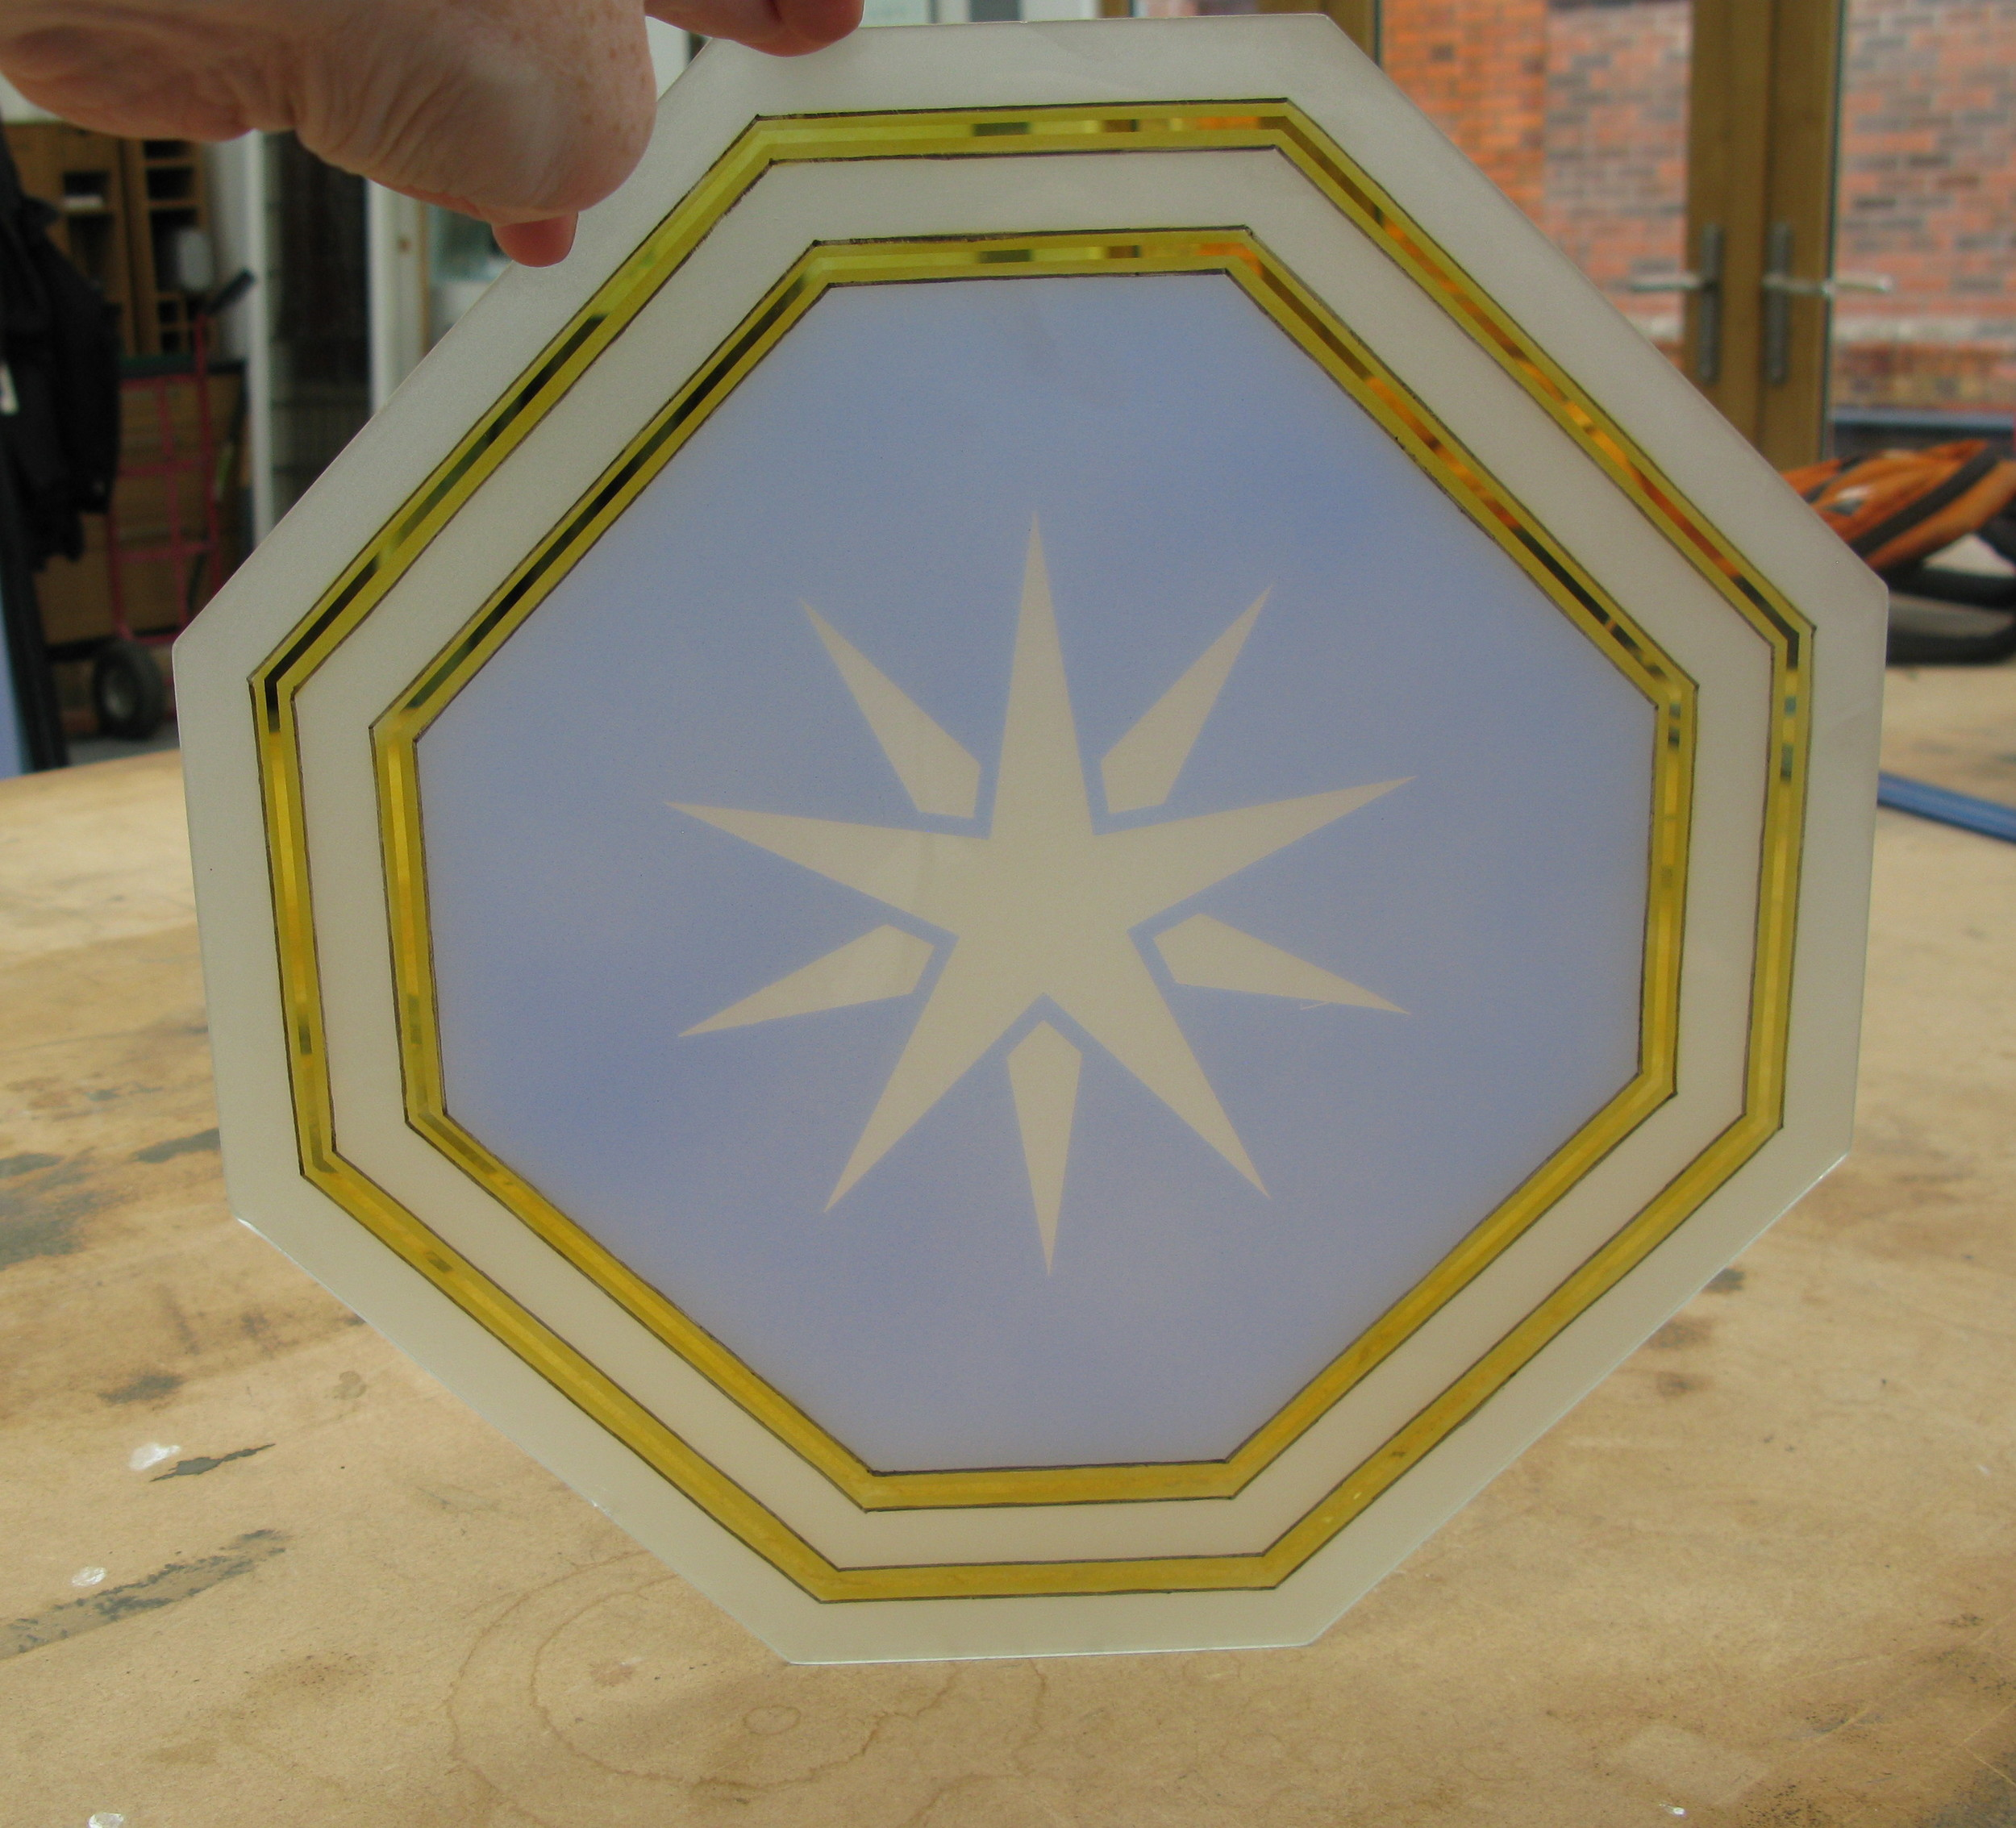 5-completed-stained-glass-hexagon.jpg